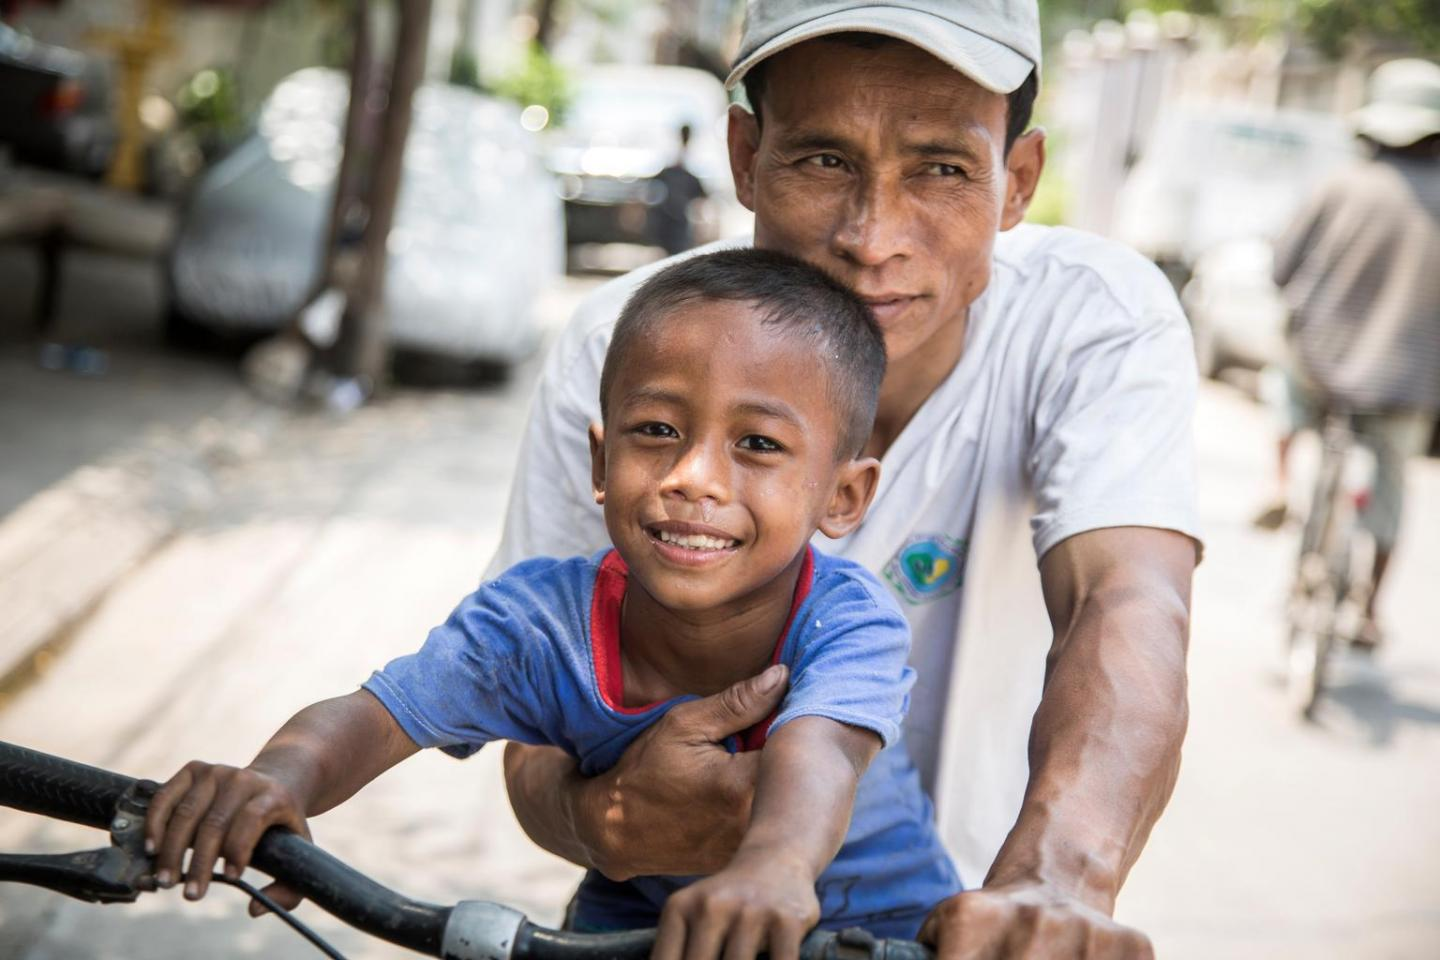 A boy with his father riding a bicycle through the city